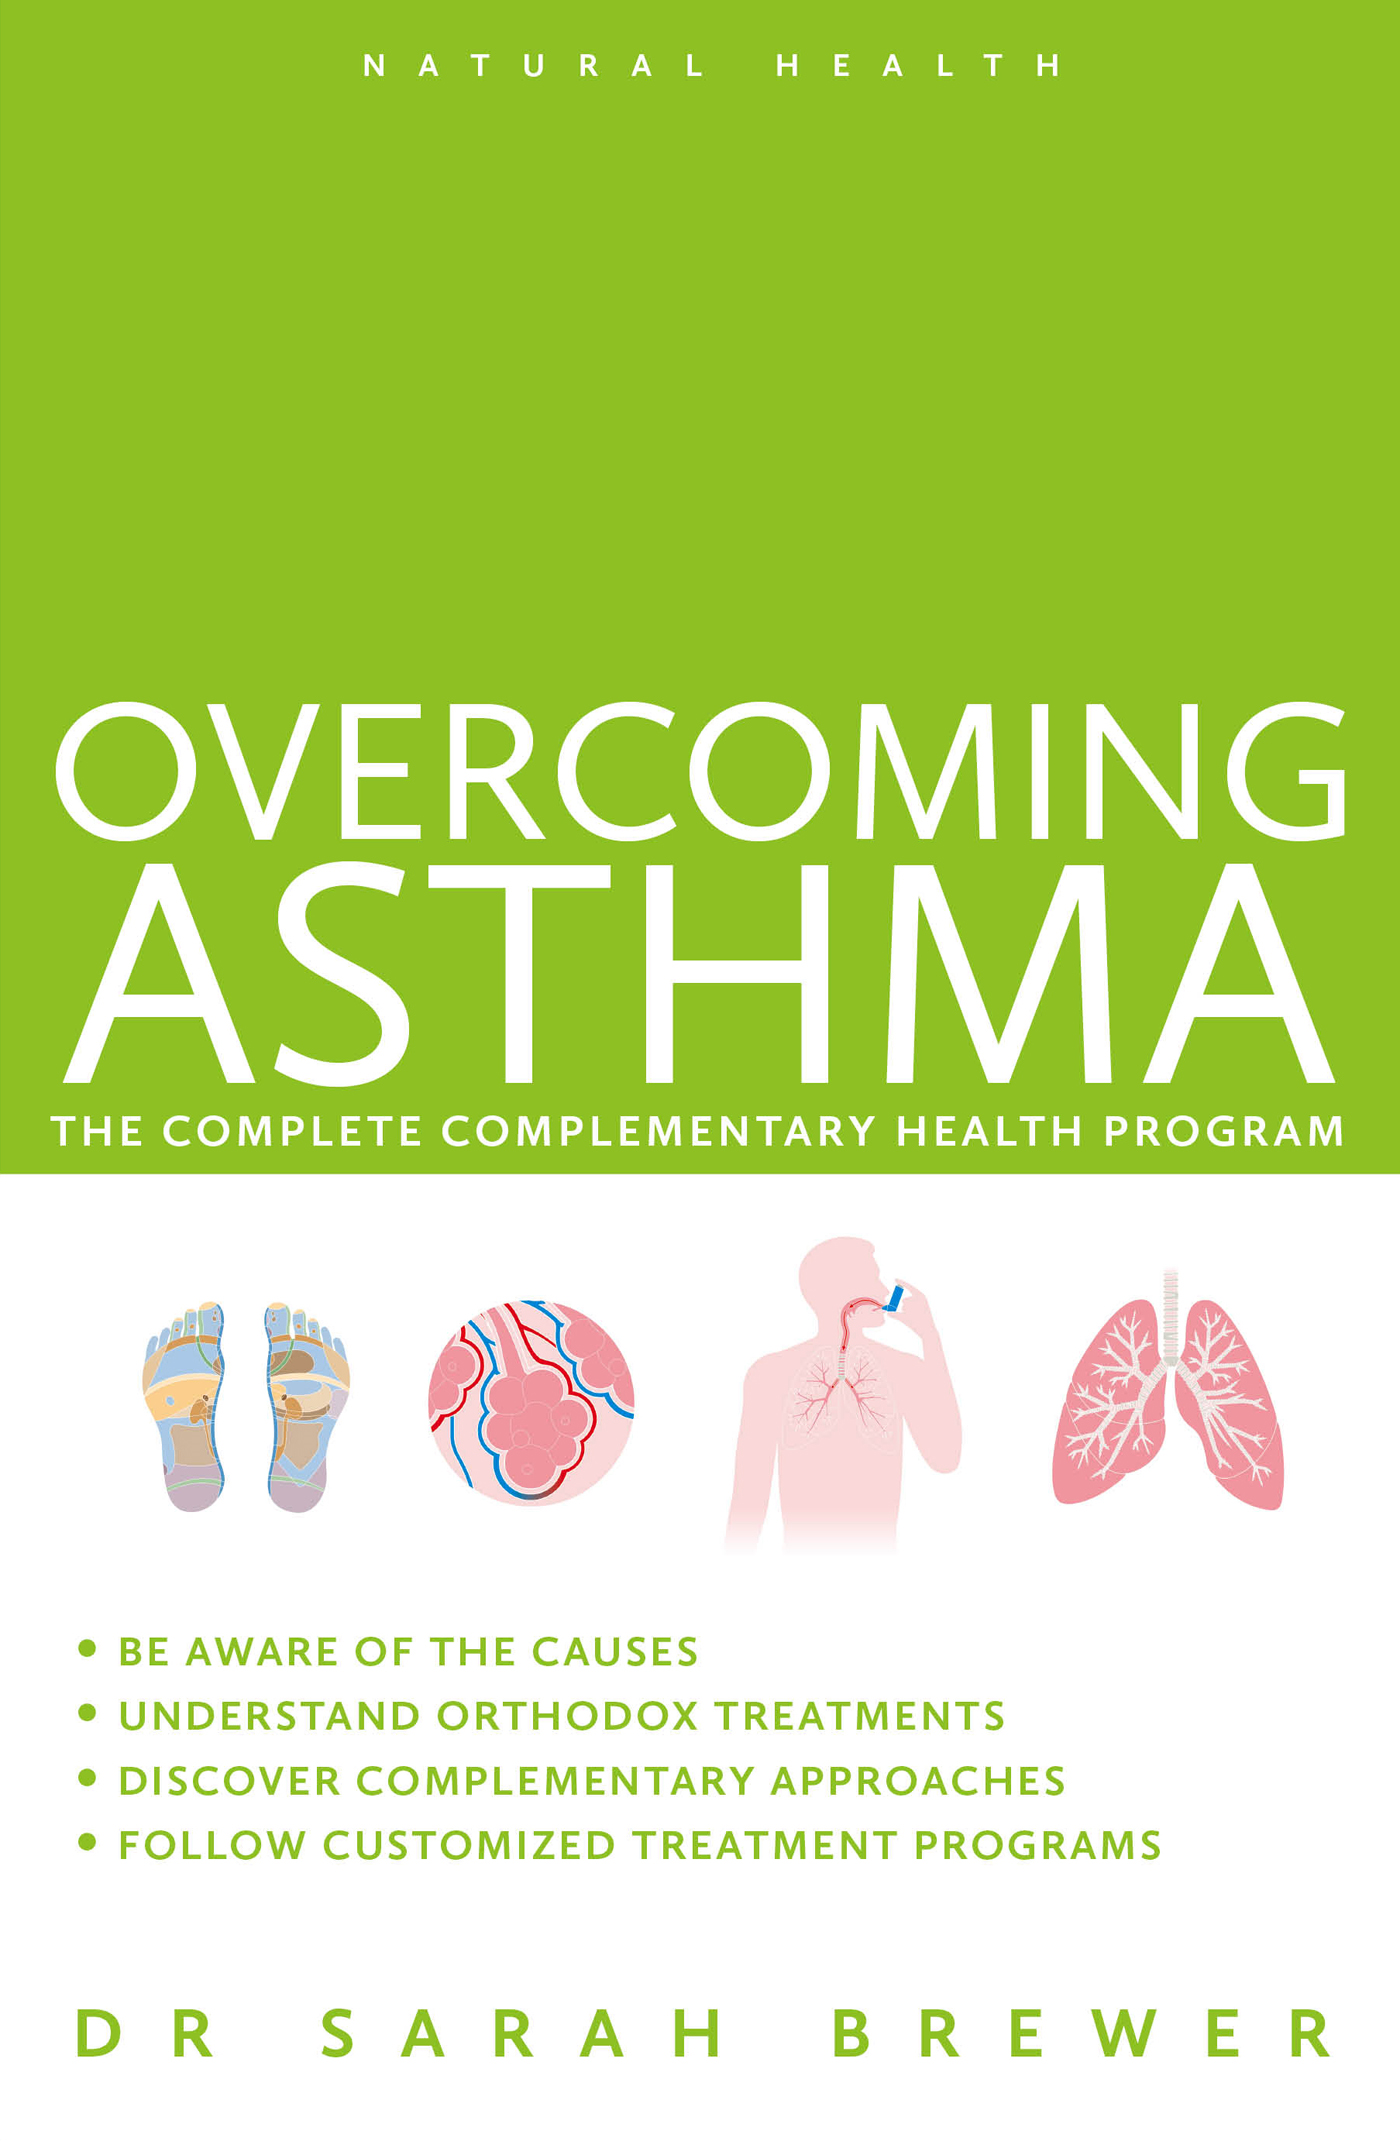 Overcoming Asthma: The Complete Complementary Health Program